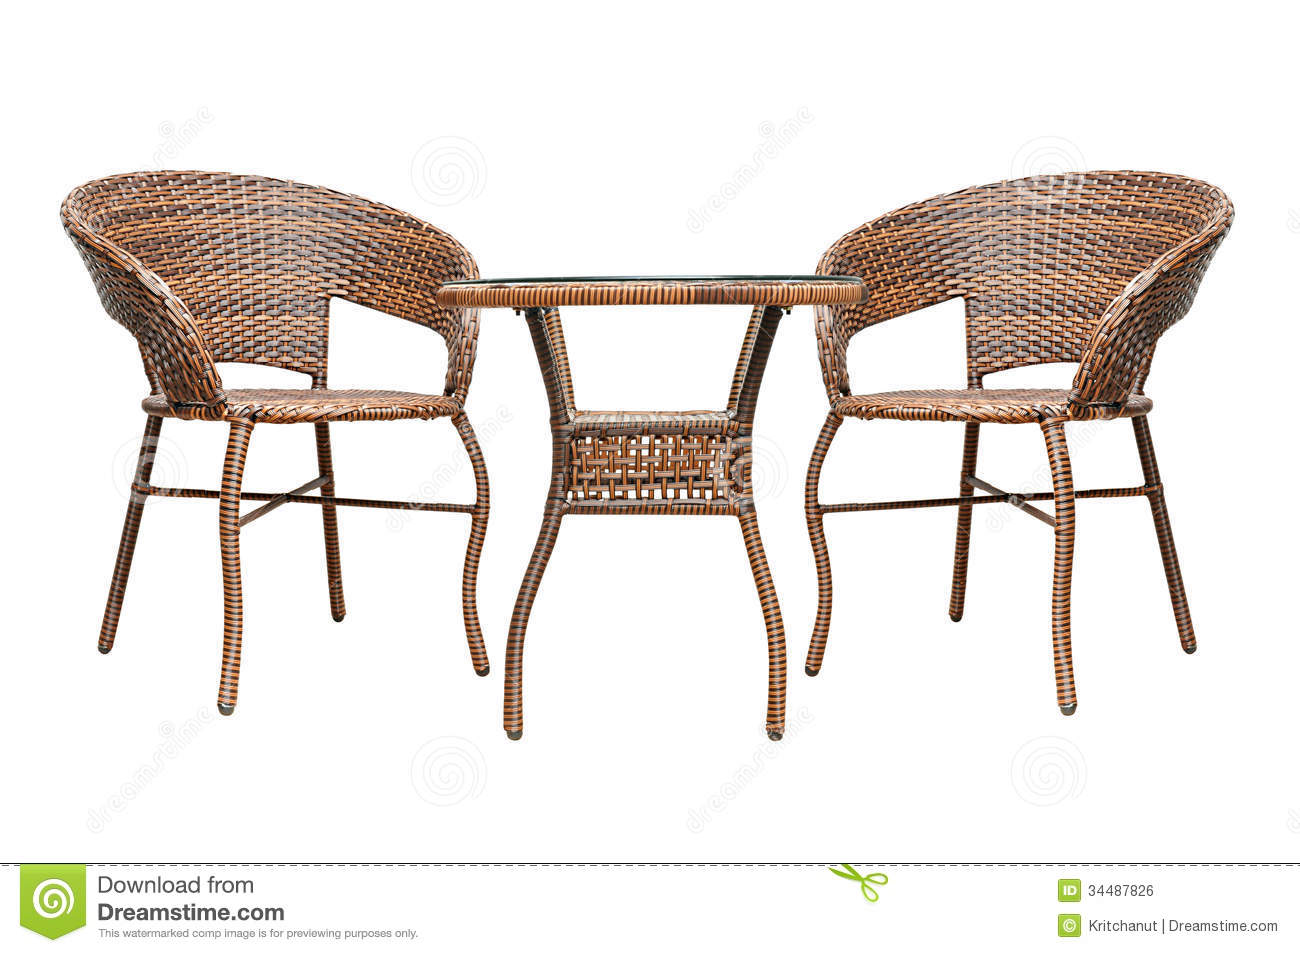 Rattan coffee table set - Rattan Coffee Table Set Royalty Free Stock Image - Image: 34487826